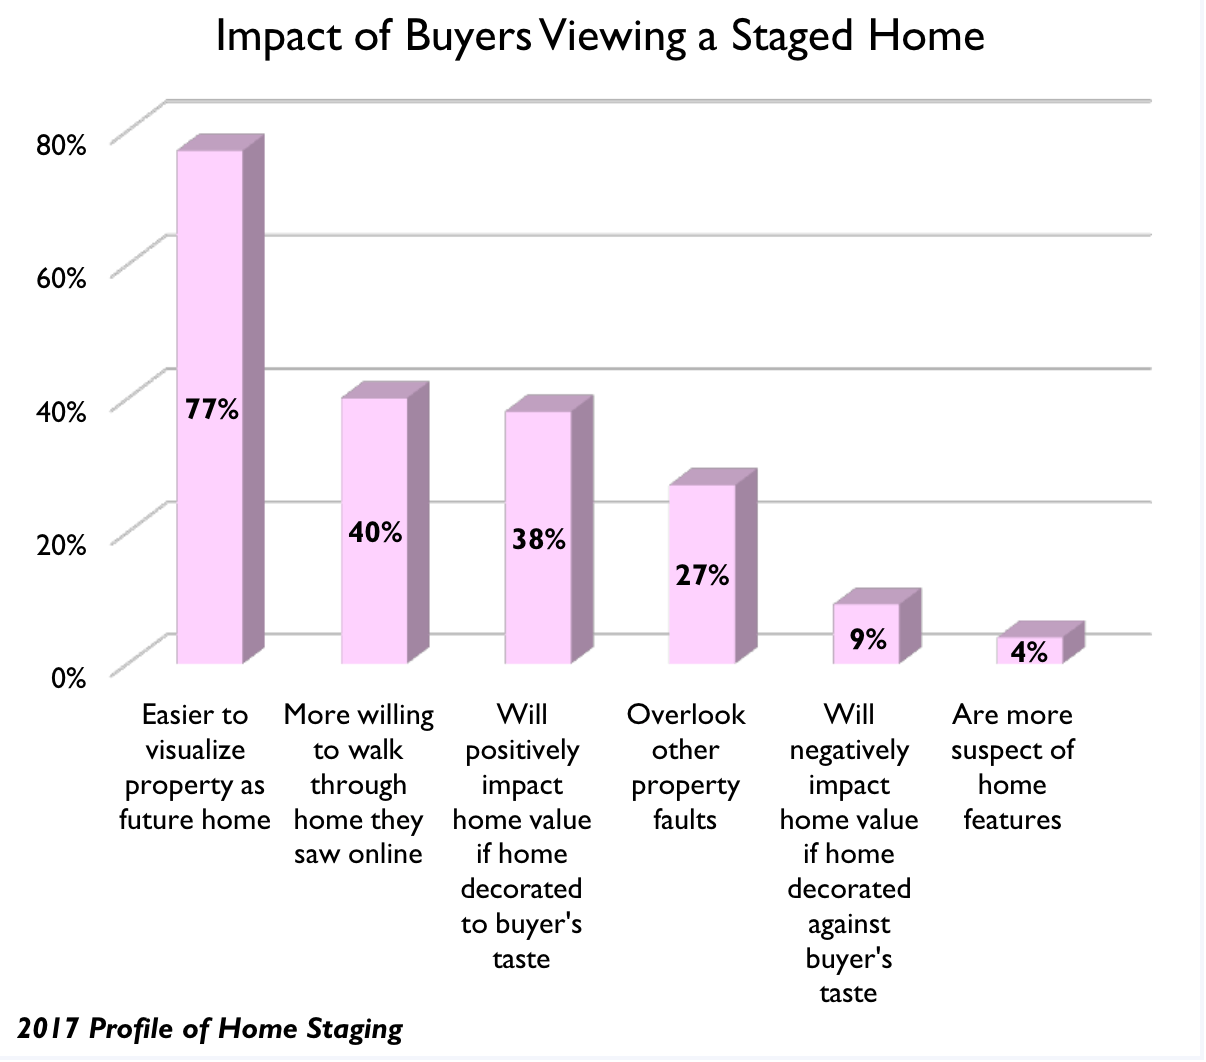 Impact of buyers viewing a staged home.